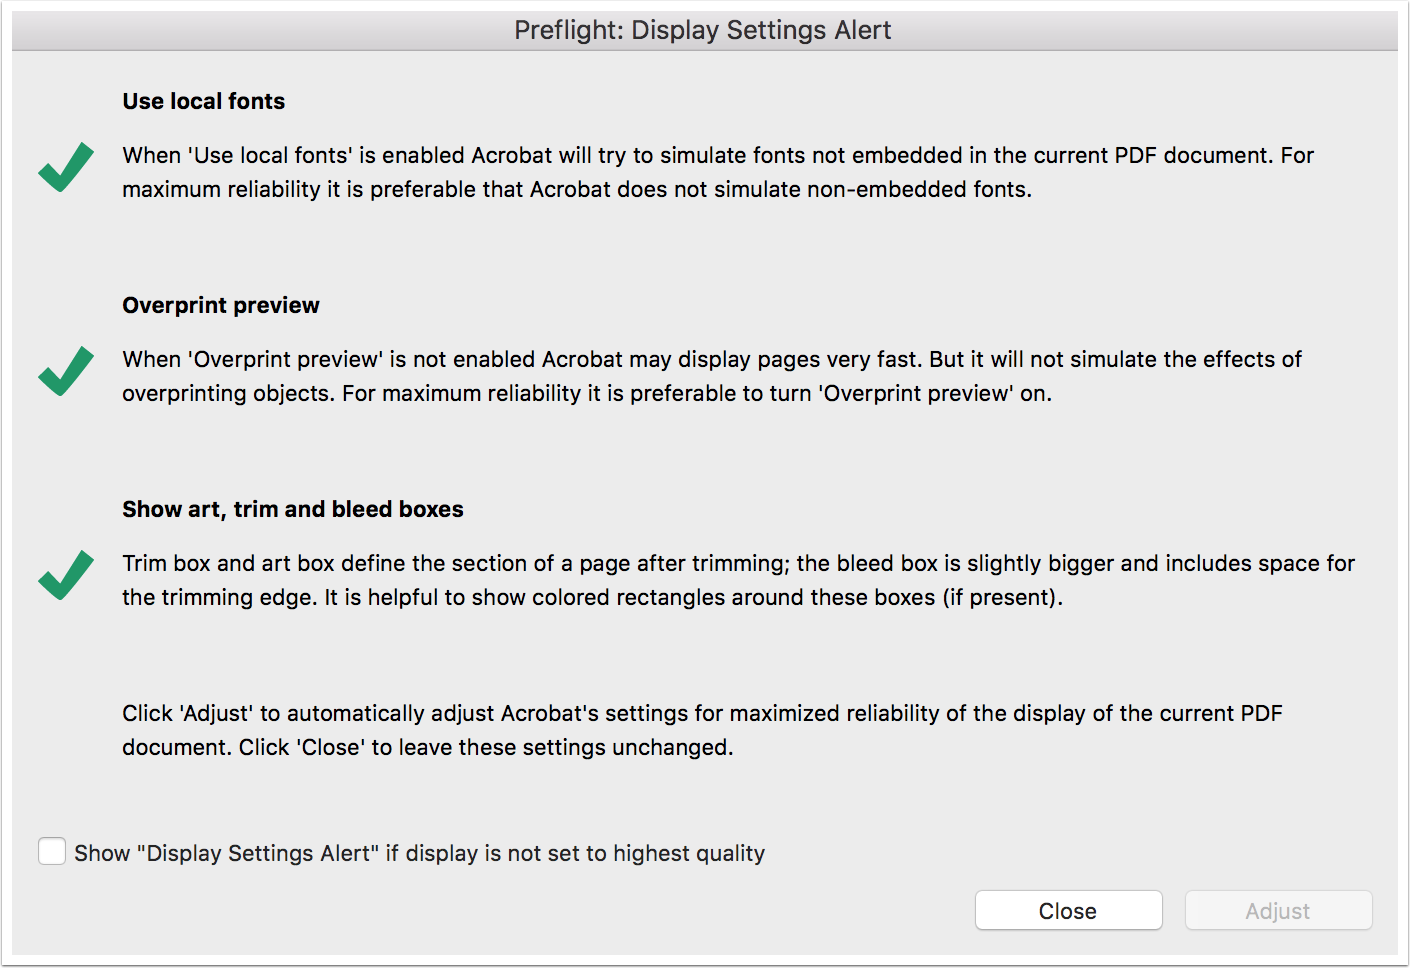 Adobe Acrobat Preflight: Display Settings Alert